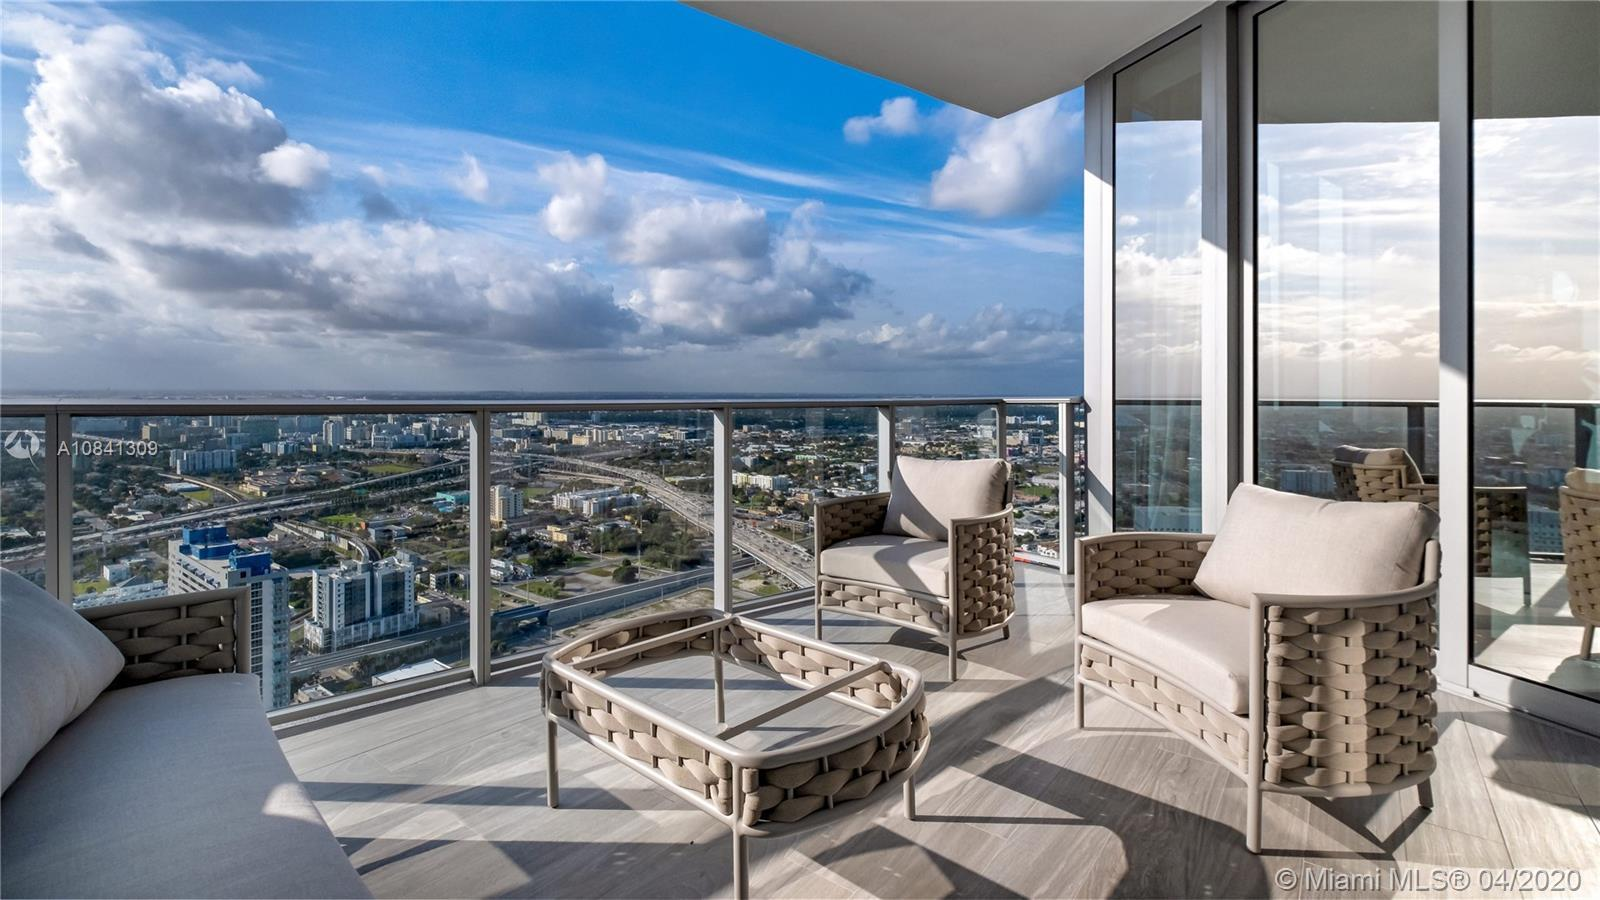 PARAMOUNT Miami Worldcenter, the building with the most amenities in the world. Unit was designed by